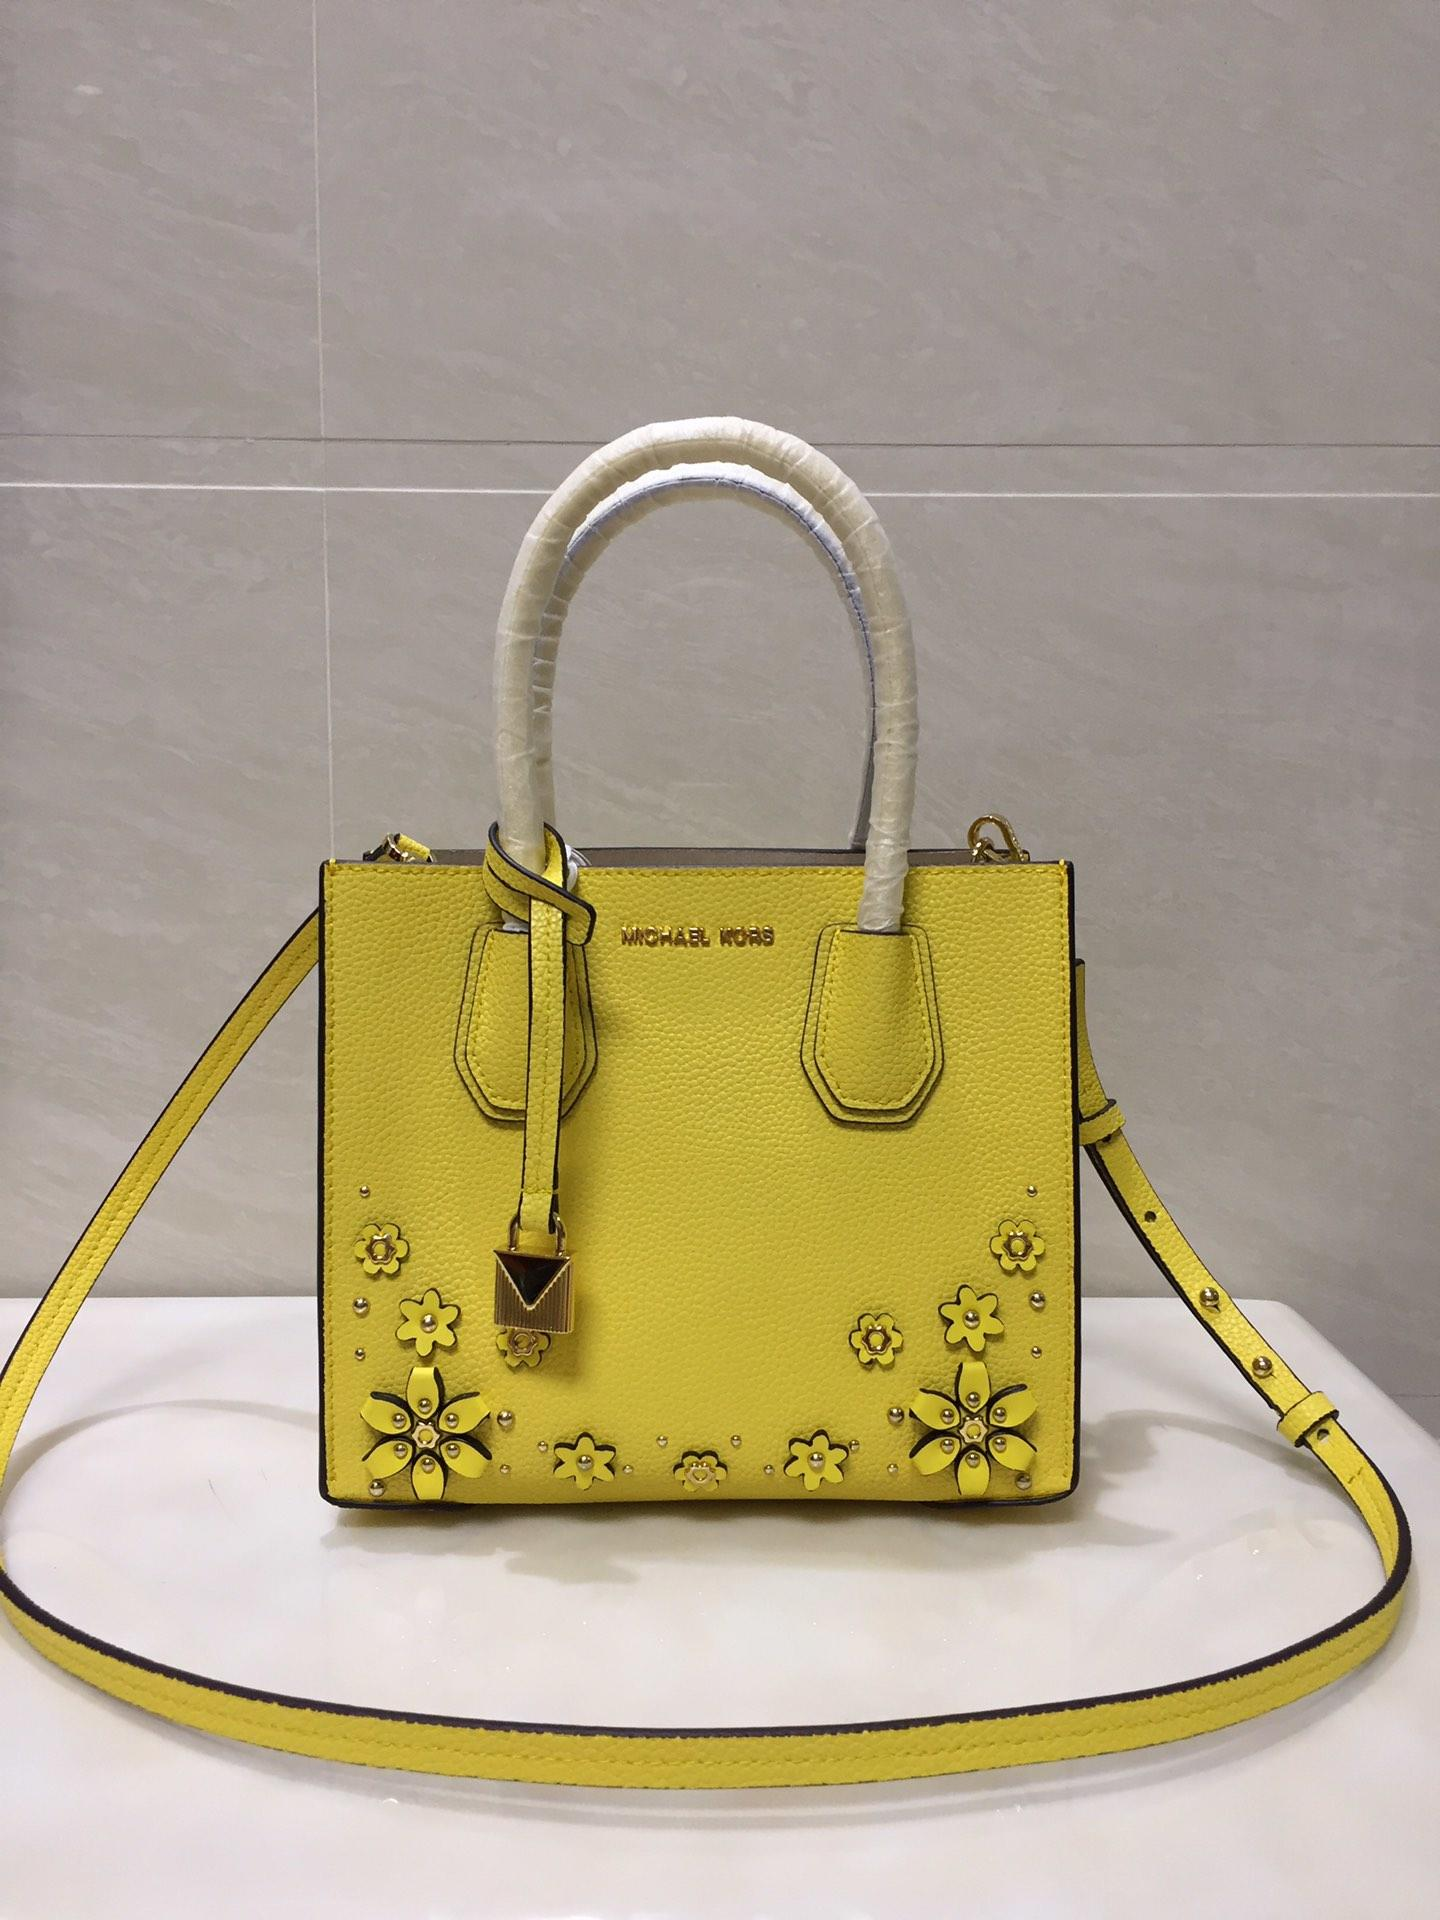 2018 New Replica Michael Kors Mercer Leather Tote Bag With Flower Yellow